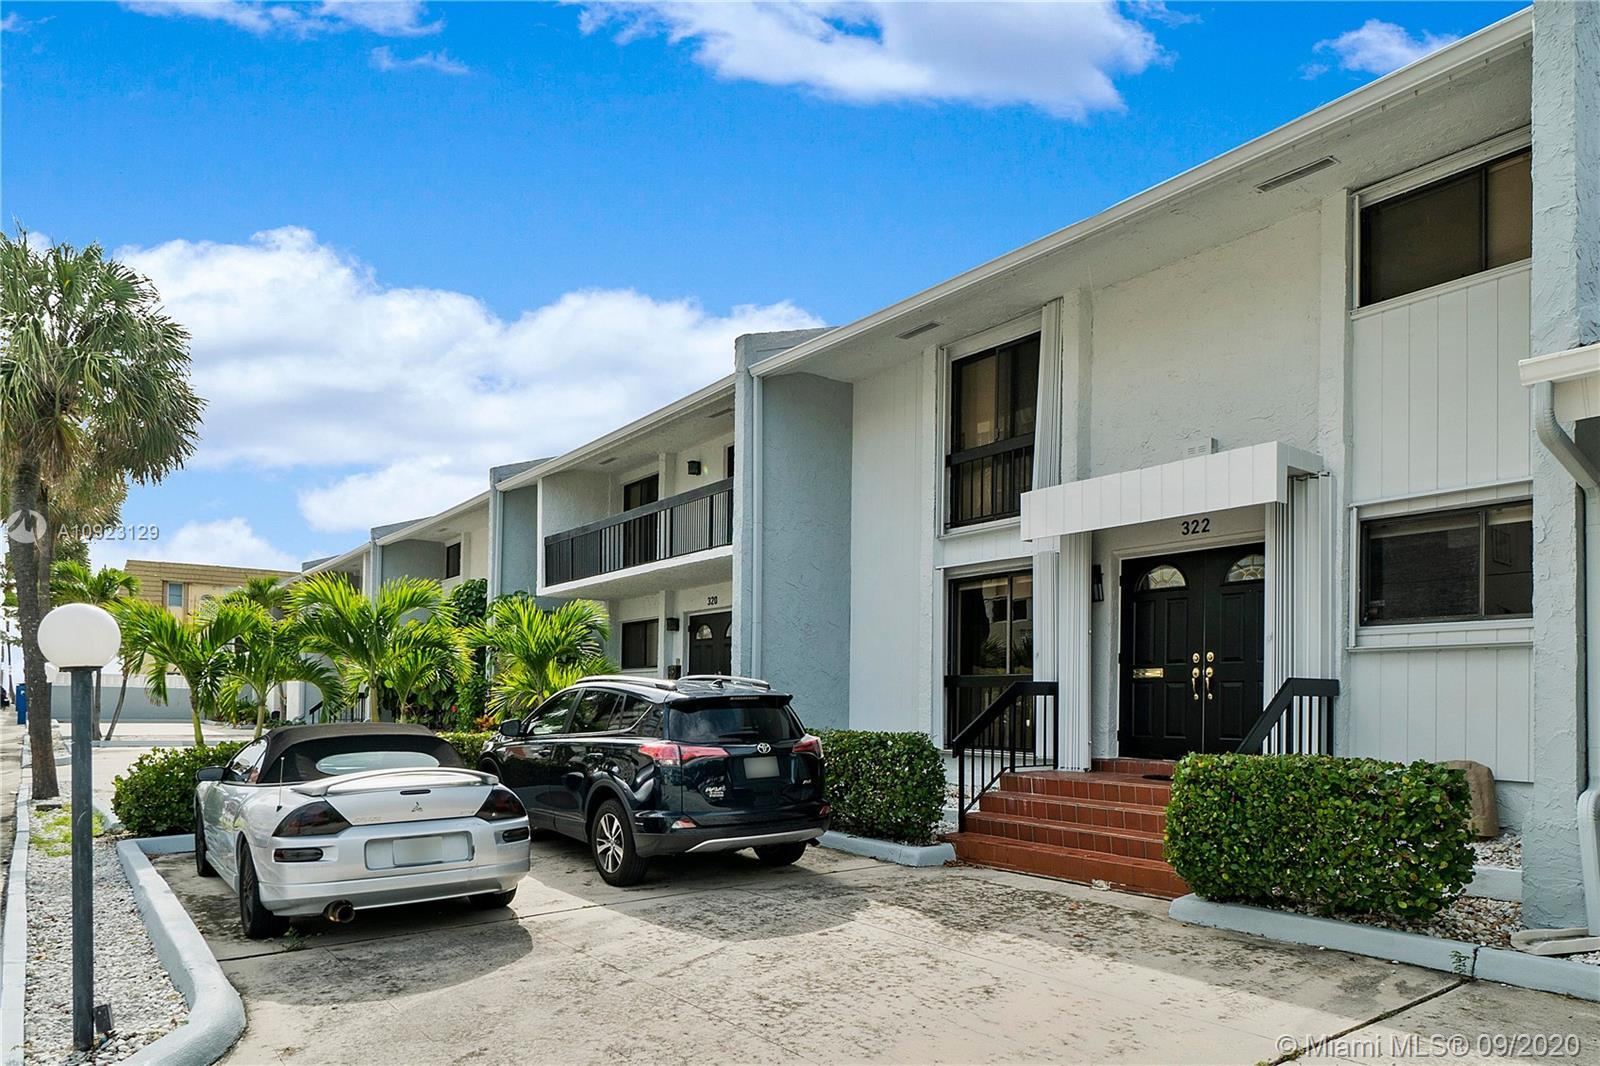 Where else can you find a large townhome on the beach with 3 bedrooms, 3 baths and almost 2000SF?  T